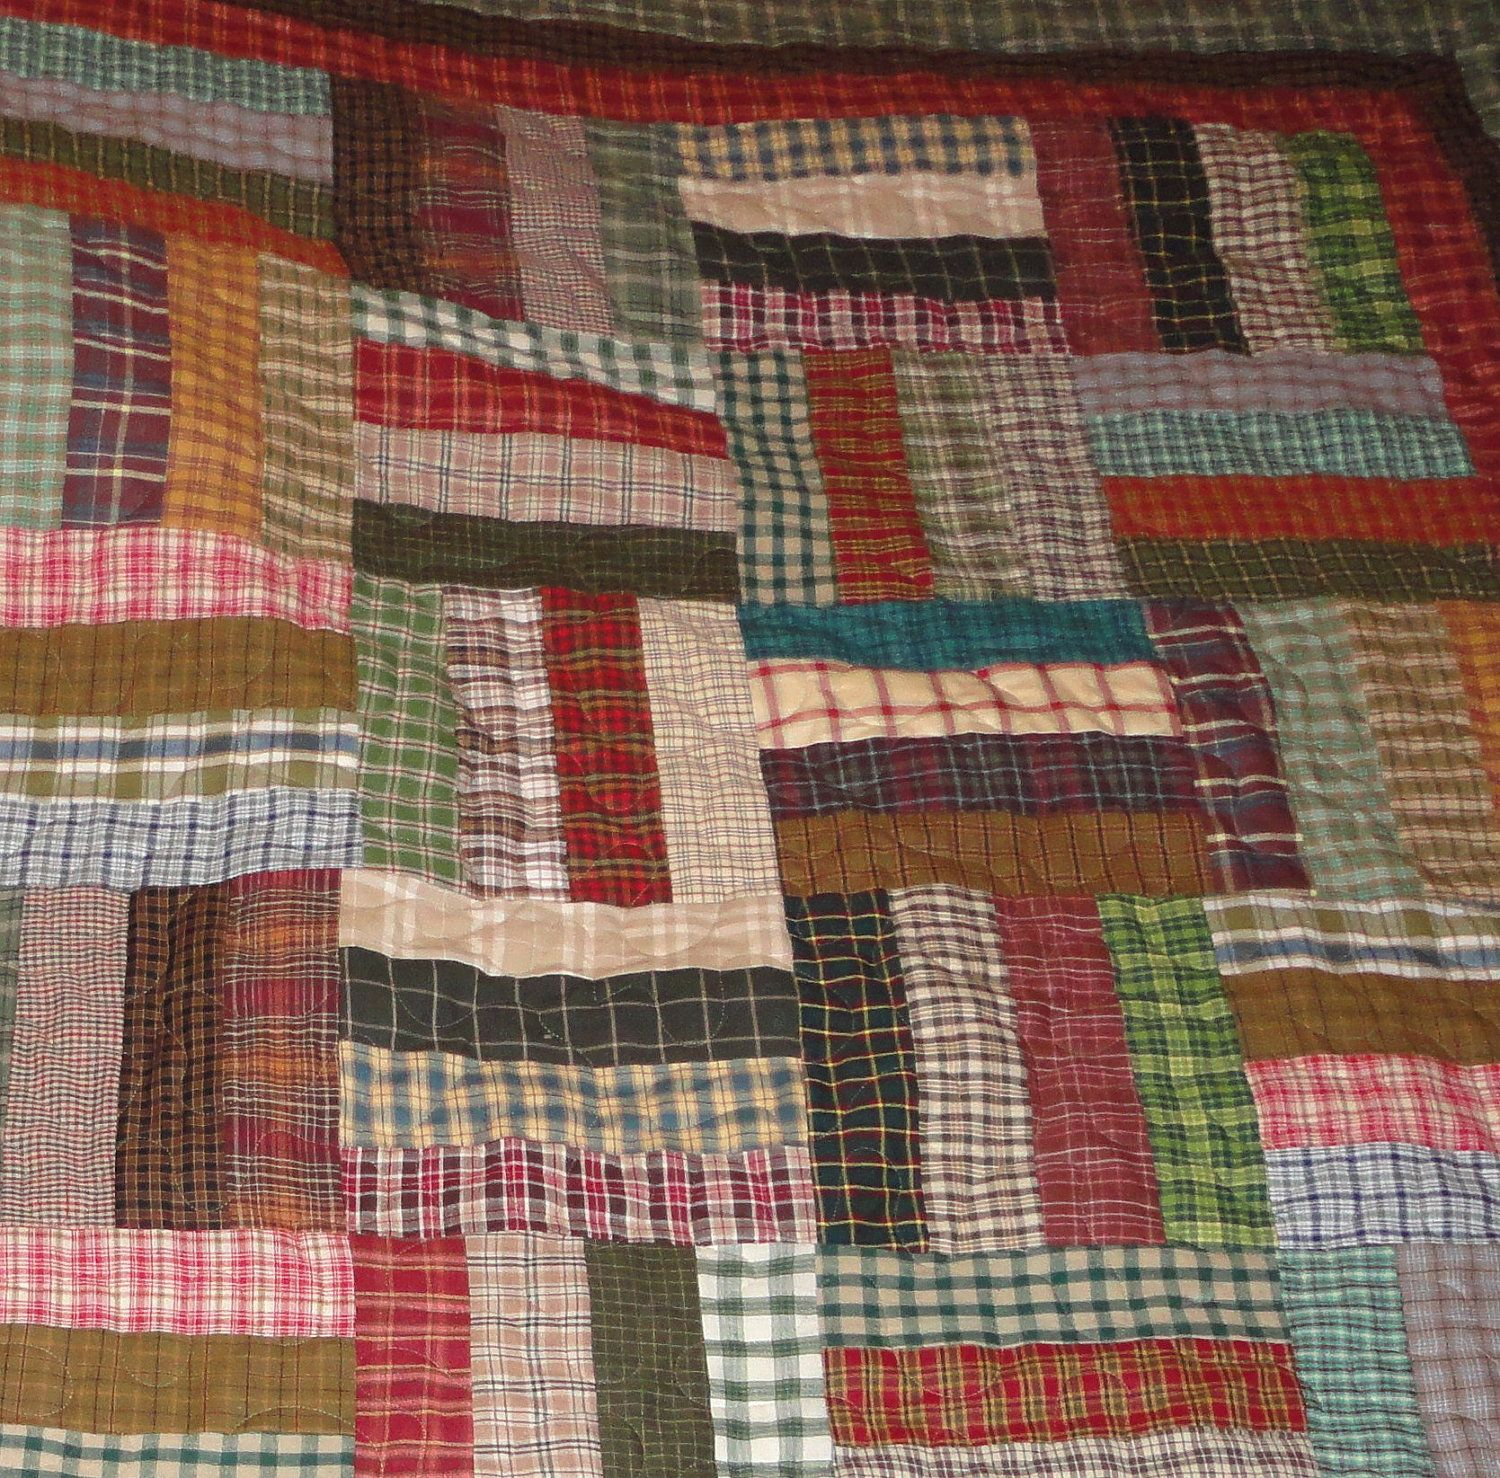 Rail Fence quilt using homespun fabric. Great way for me to use up ... : homespun quilts - Adamdwight.com